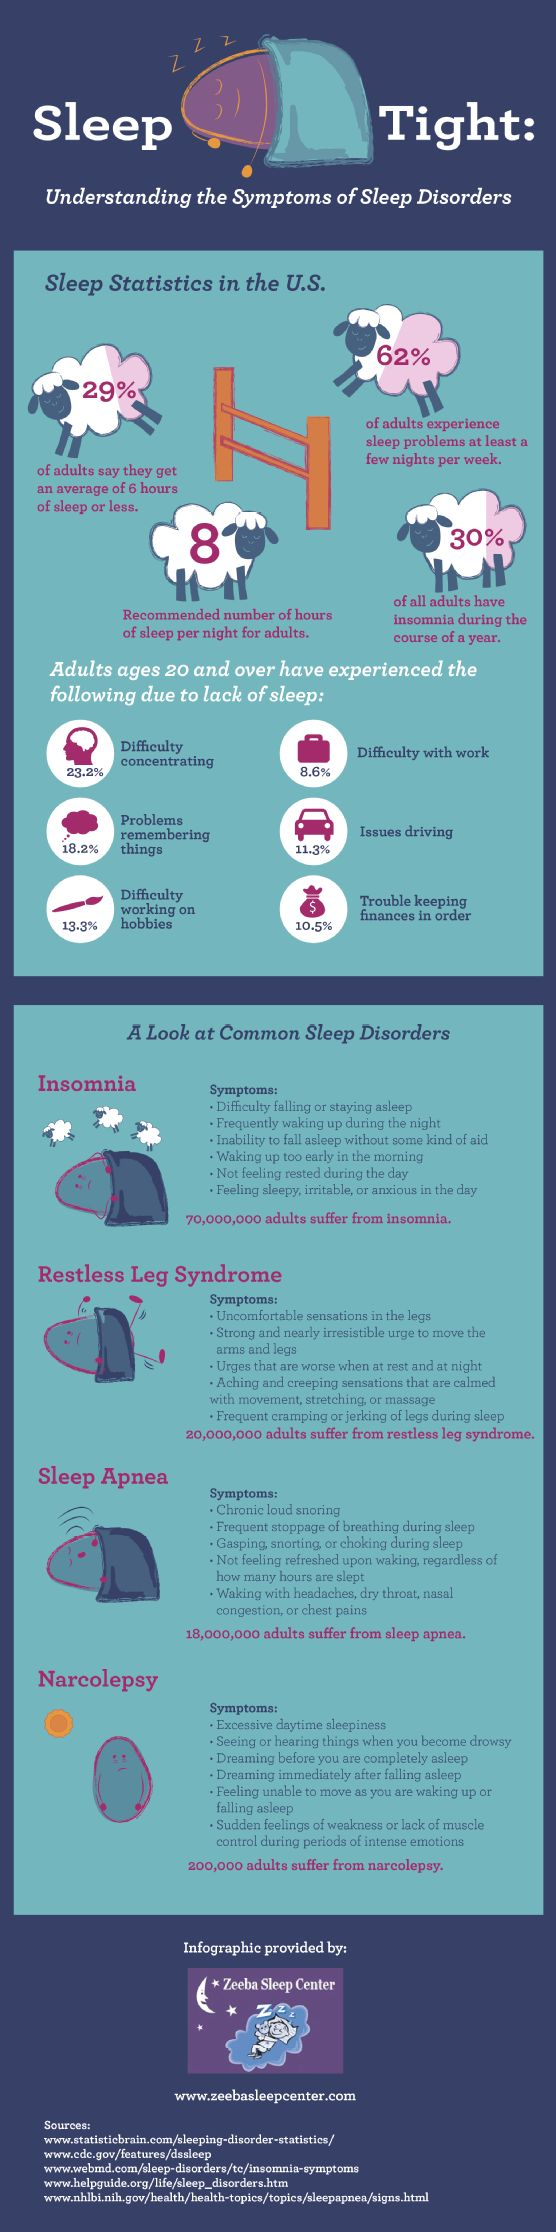 Restless leg syndrome affects 20 million adults. Sleep apnea affects 18 million. Sleeping disorders are common and can make everyday tasks difficult t